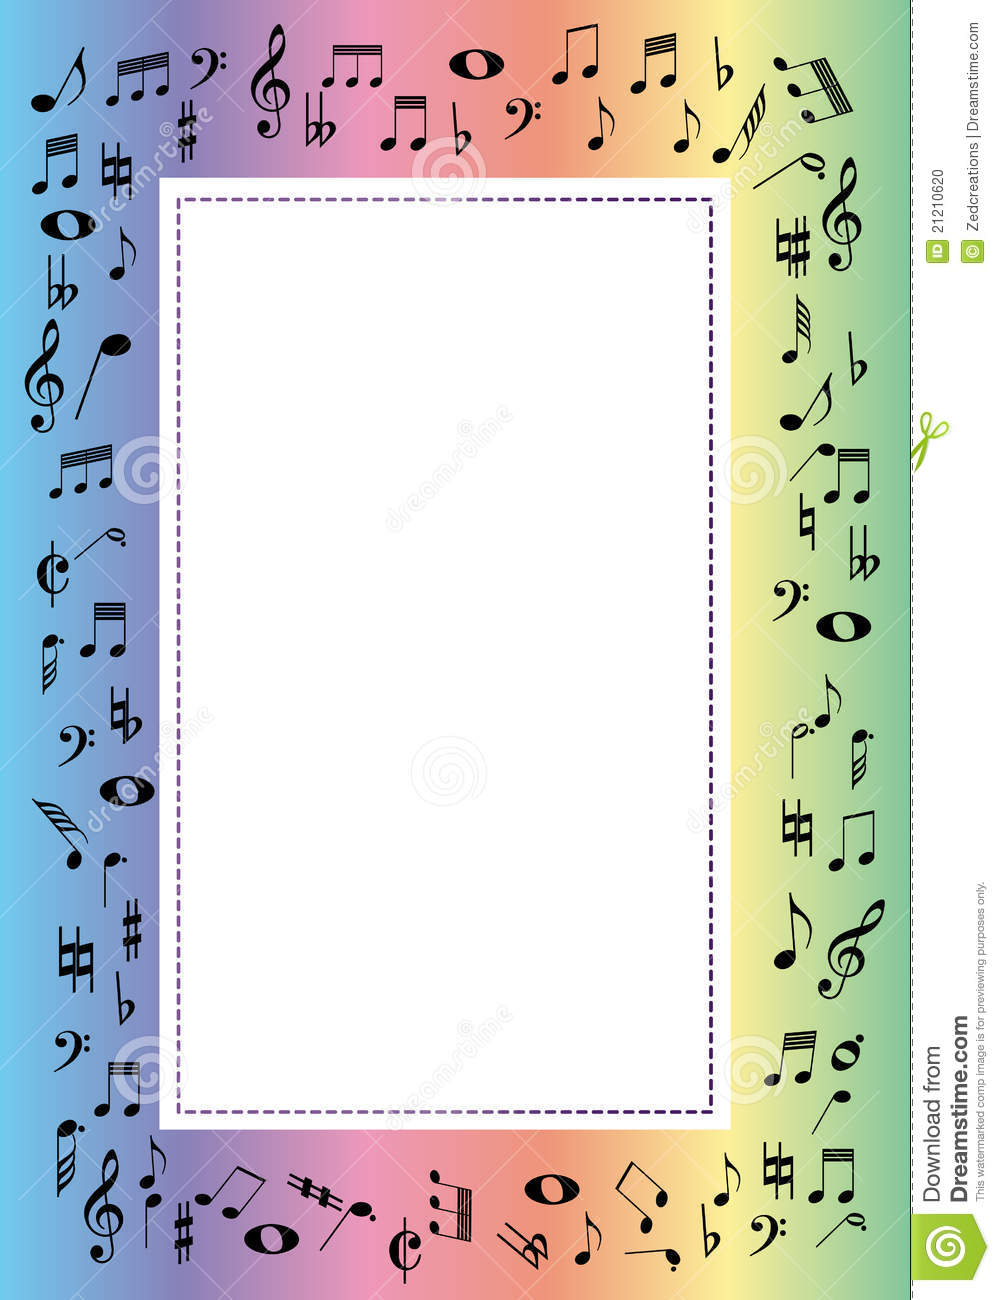 Music border stock vector. Illustration of notes, advertise - 21210620